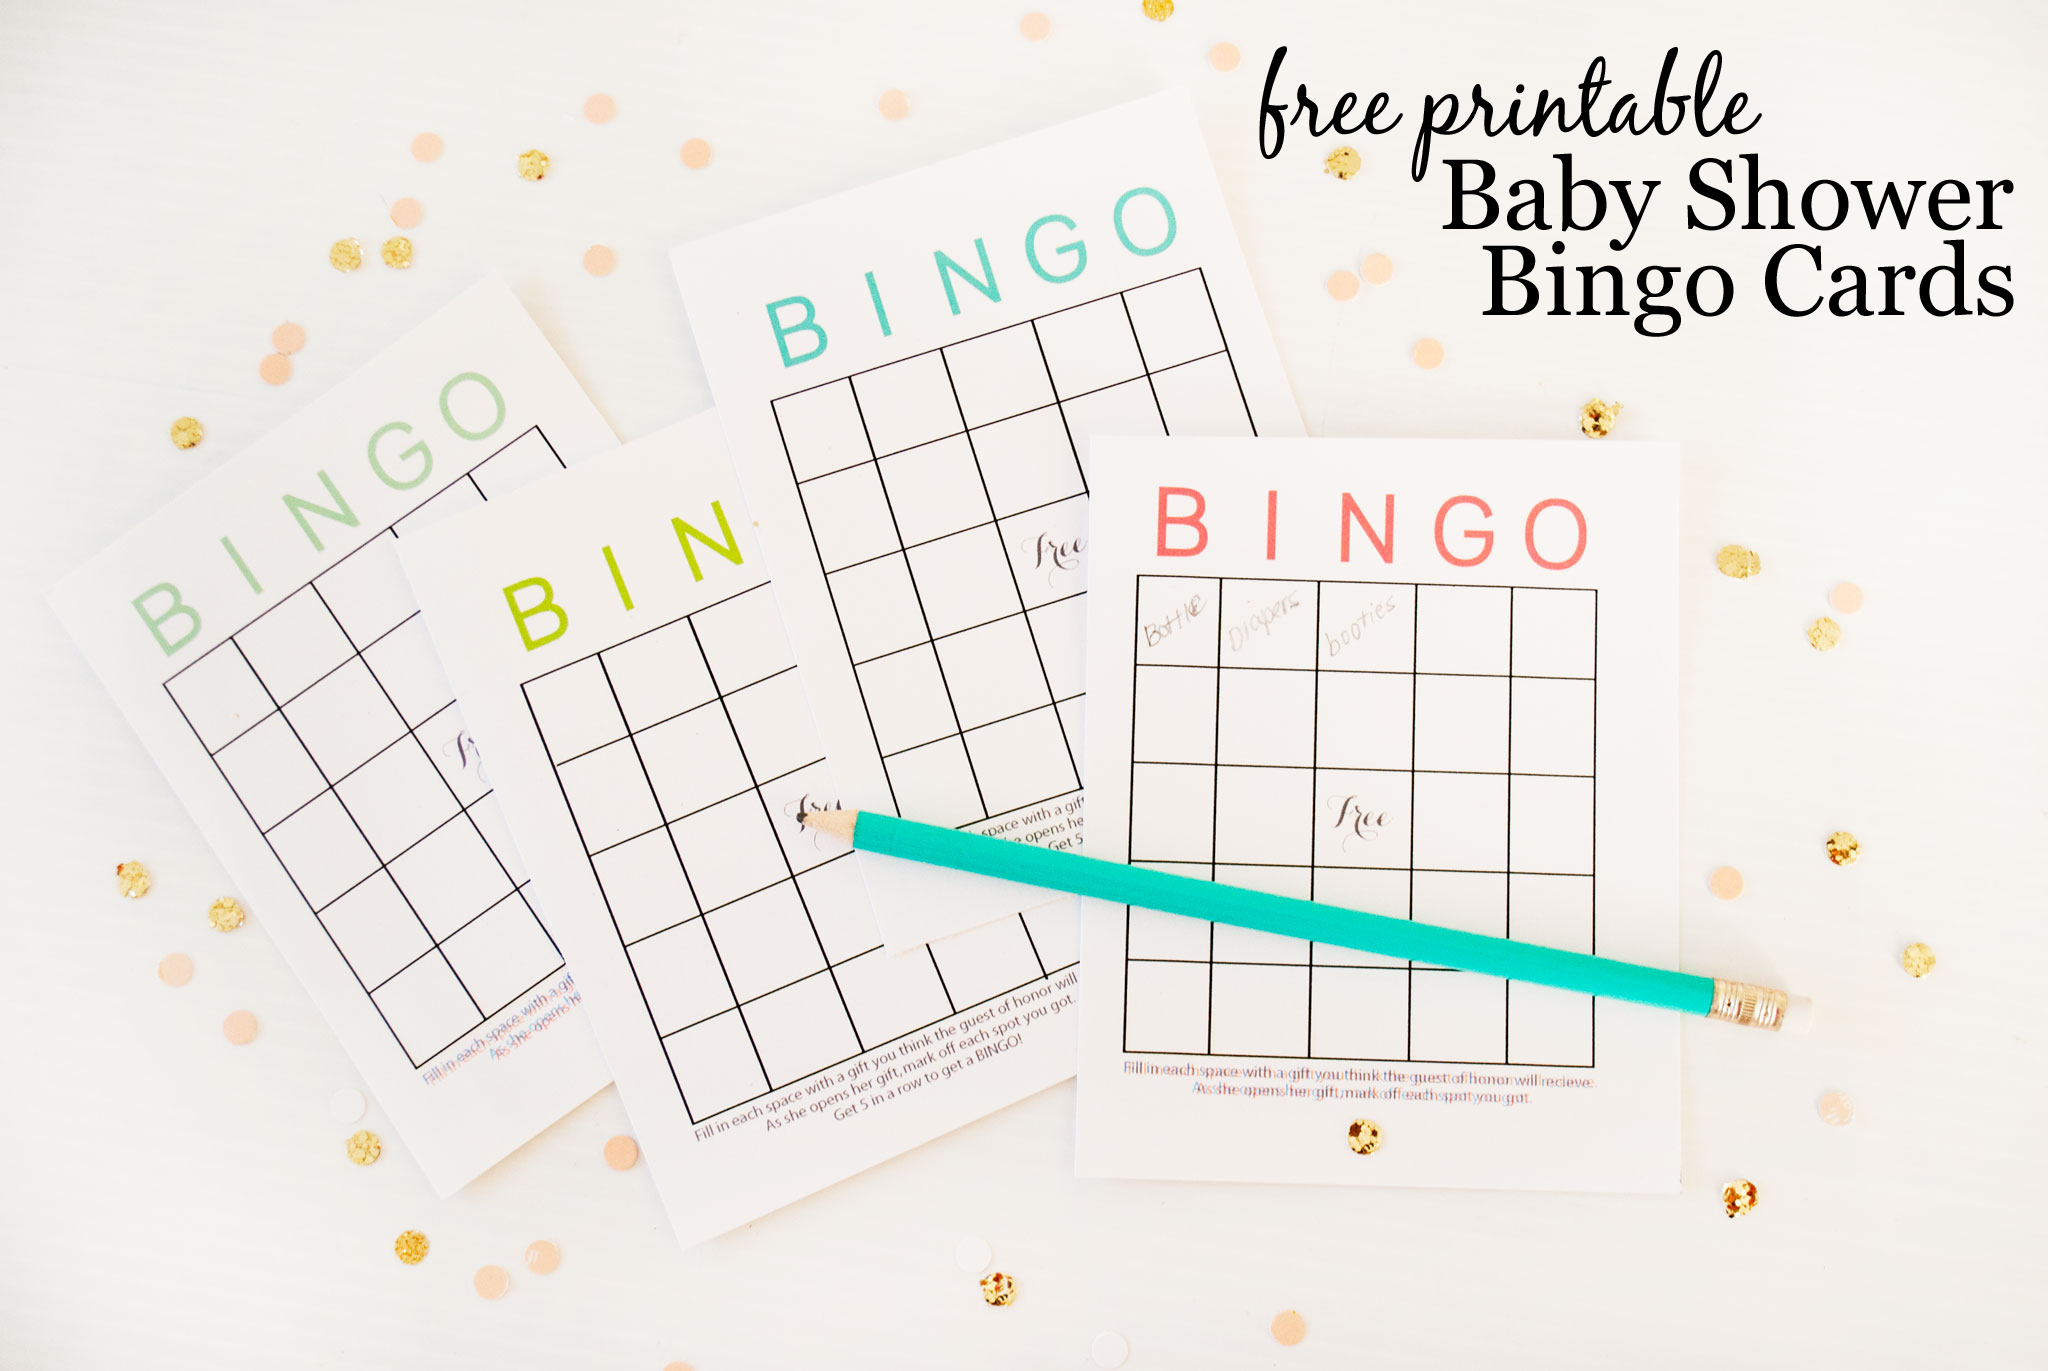 Free Printable Baby Shower Bingo Cards